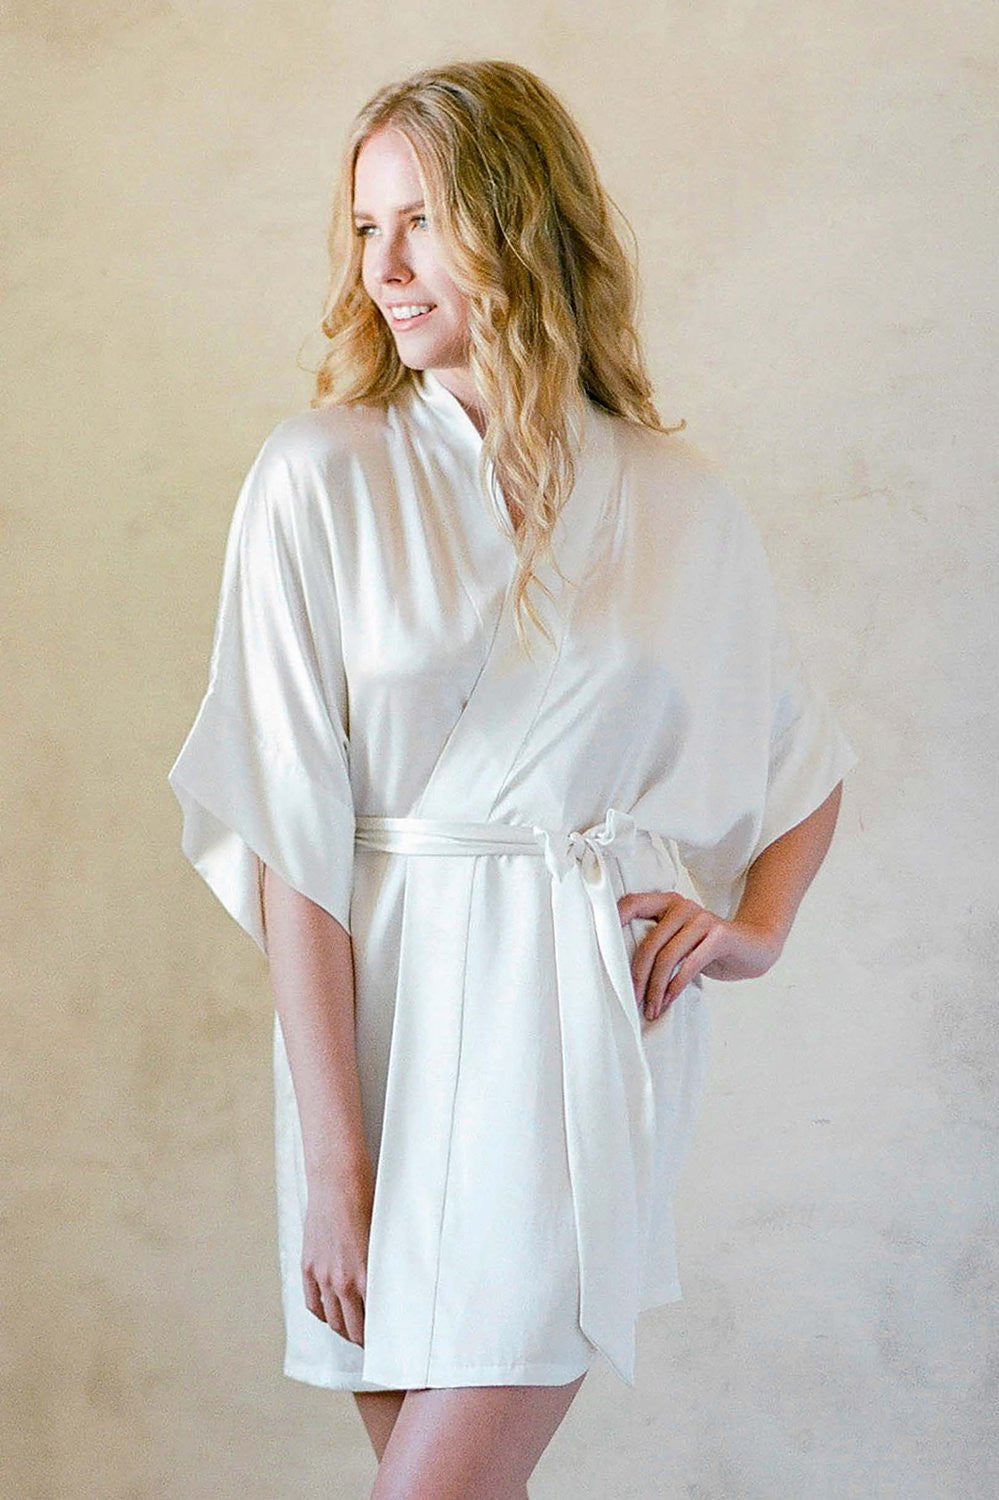 SAMANTHA SILK KIMONO ROBE IN OFF WHITE - STYLE 300